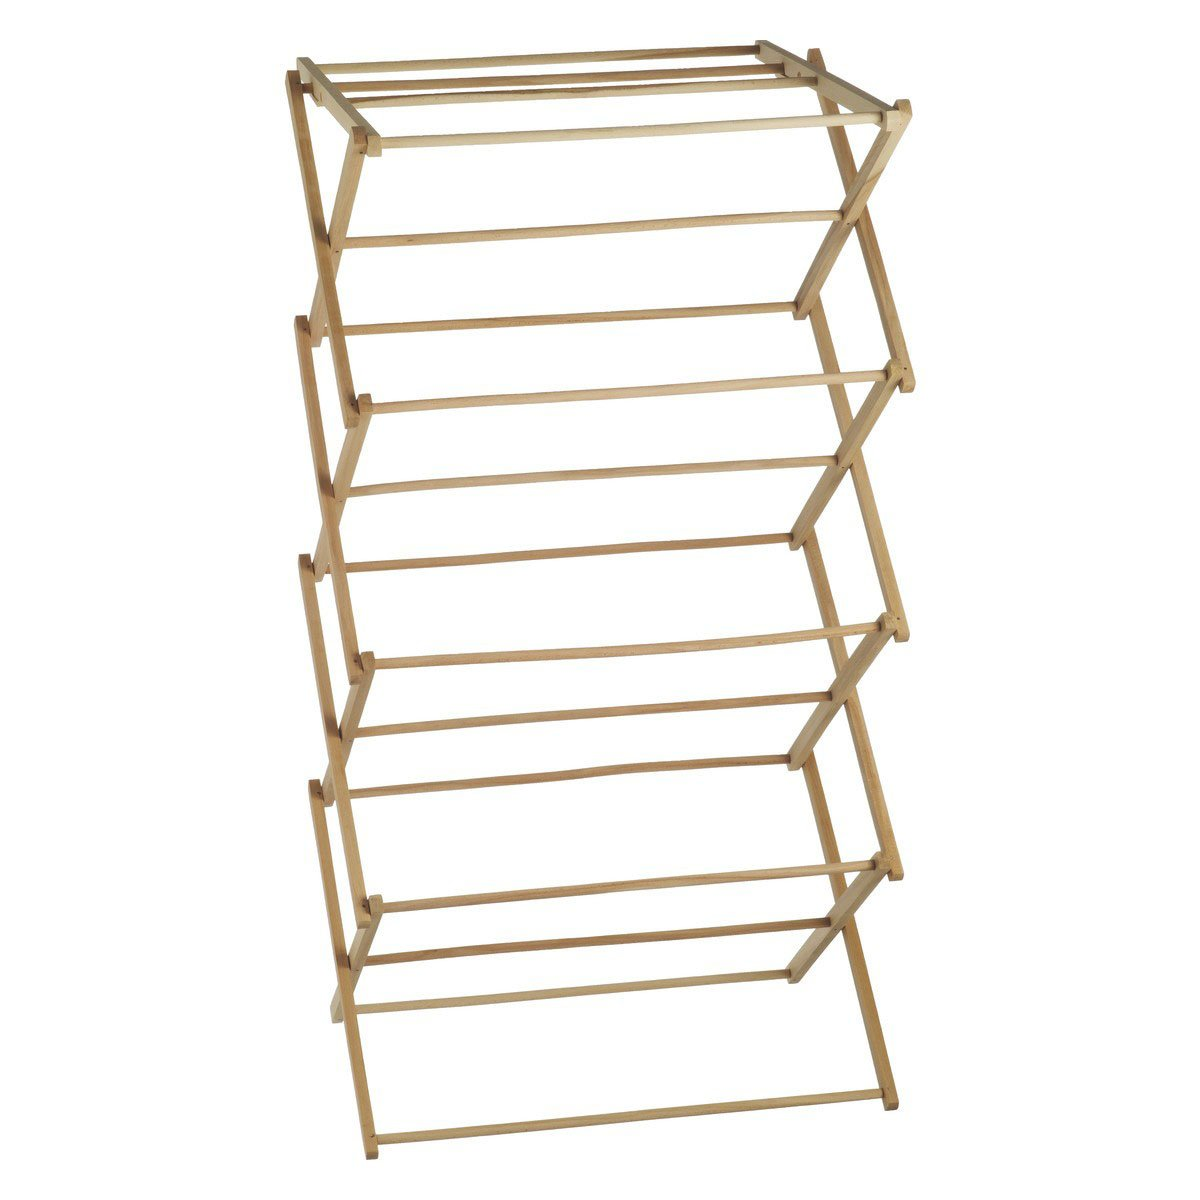 it dp kitchen wooden stand rack com amazon heavy drying clothes cloth bamboo duty home